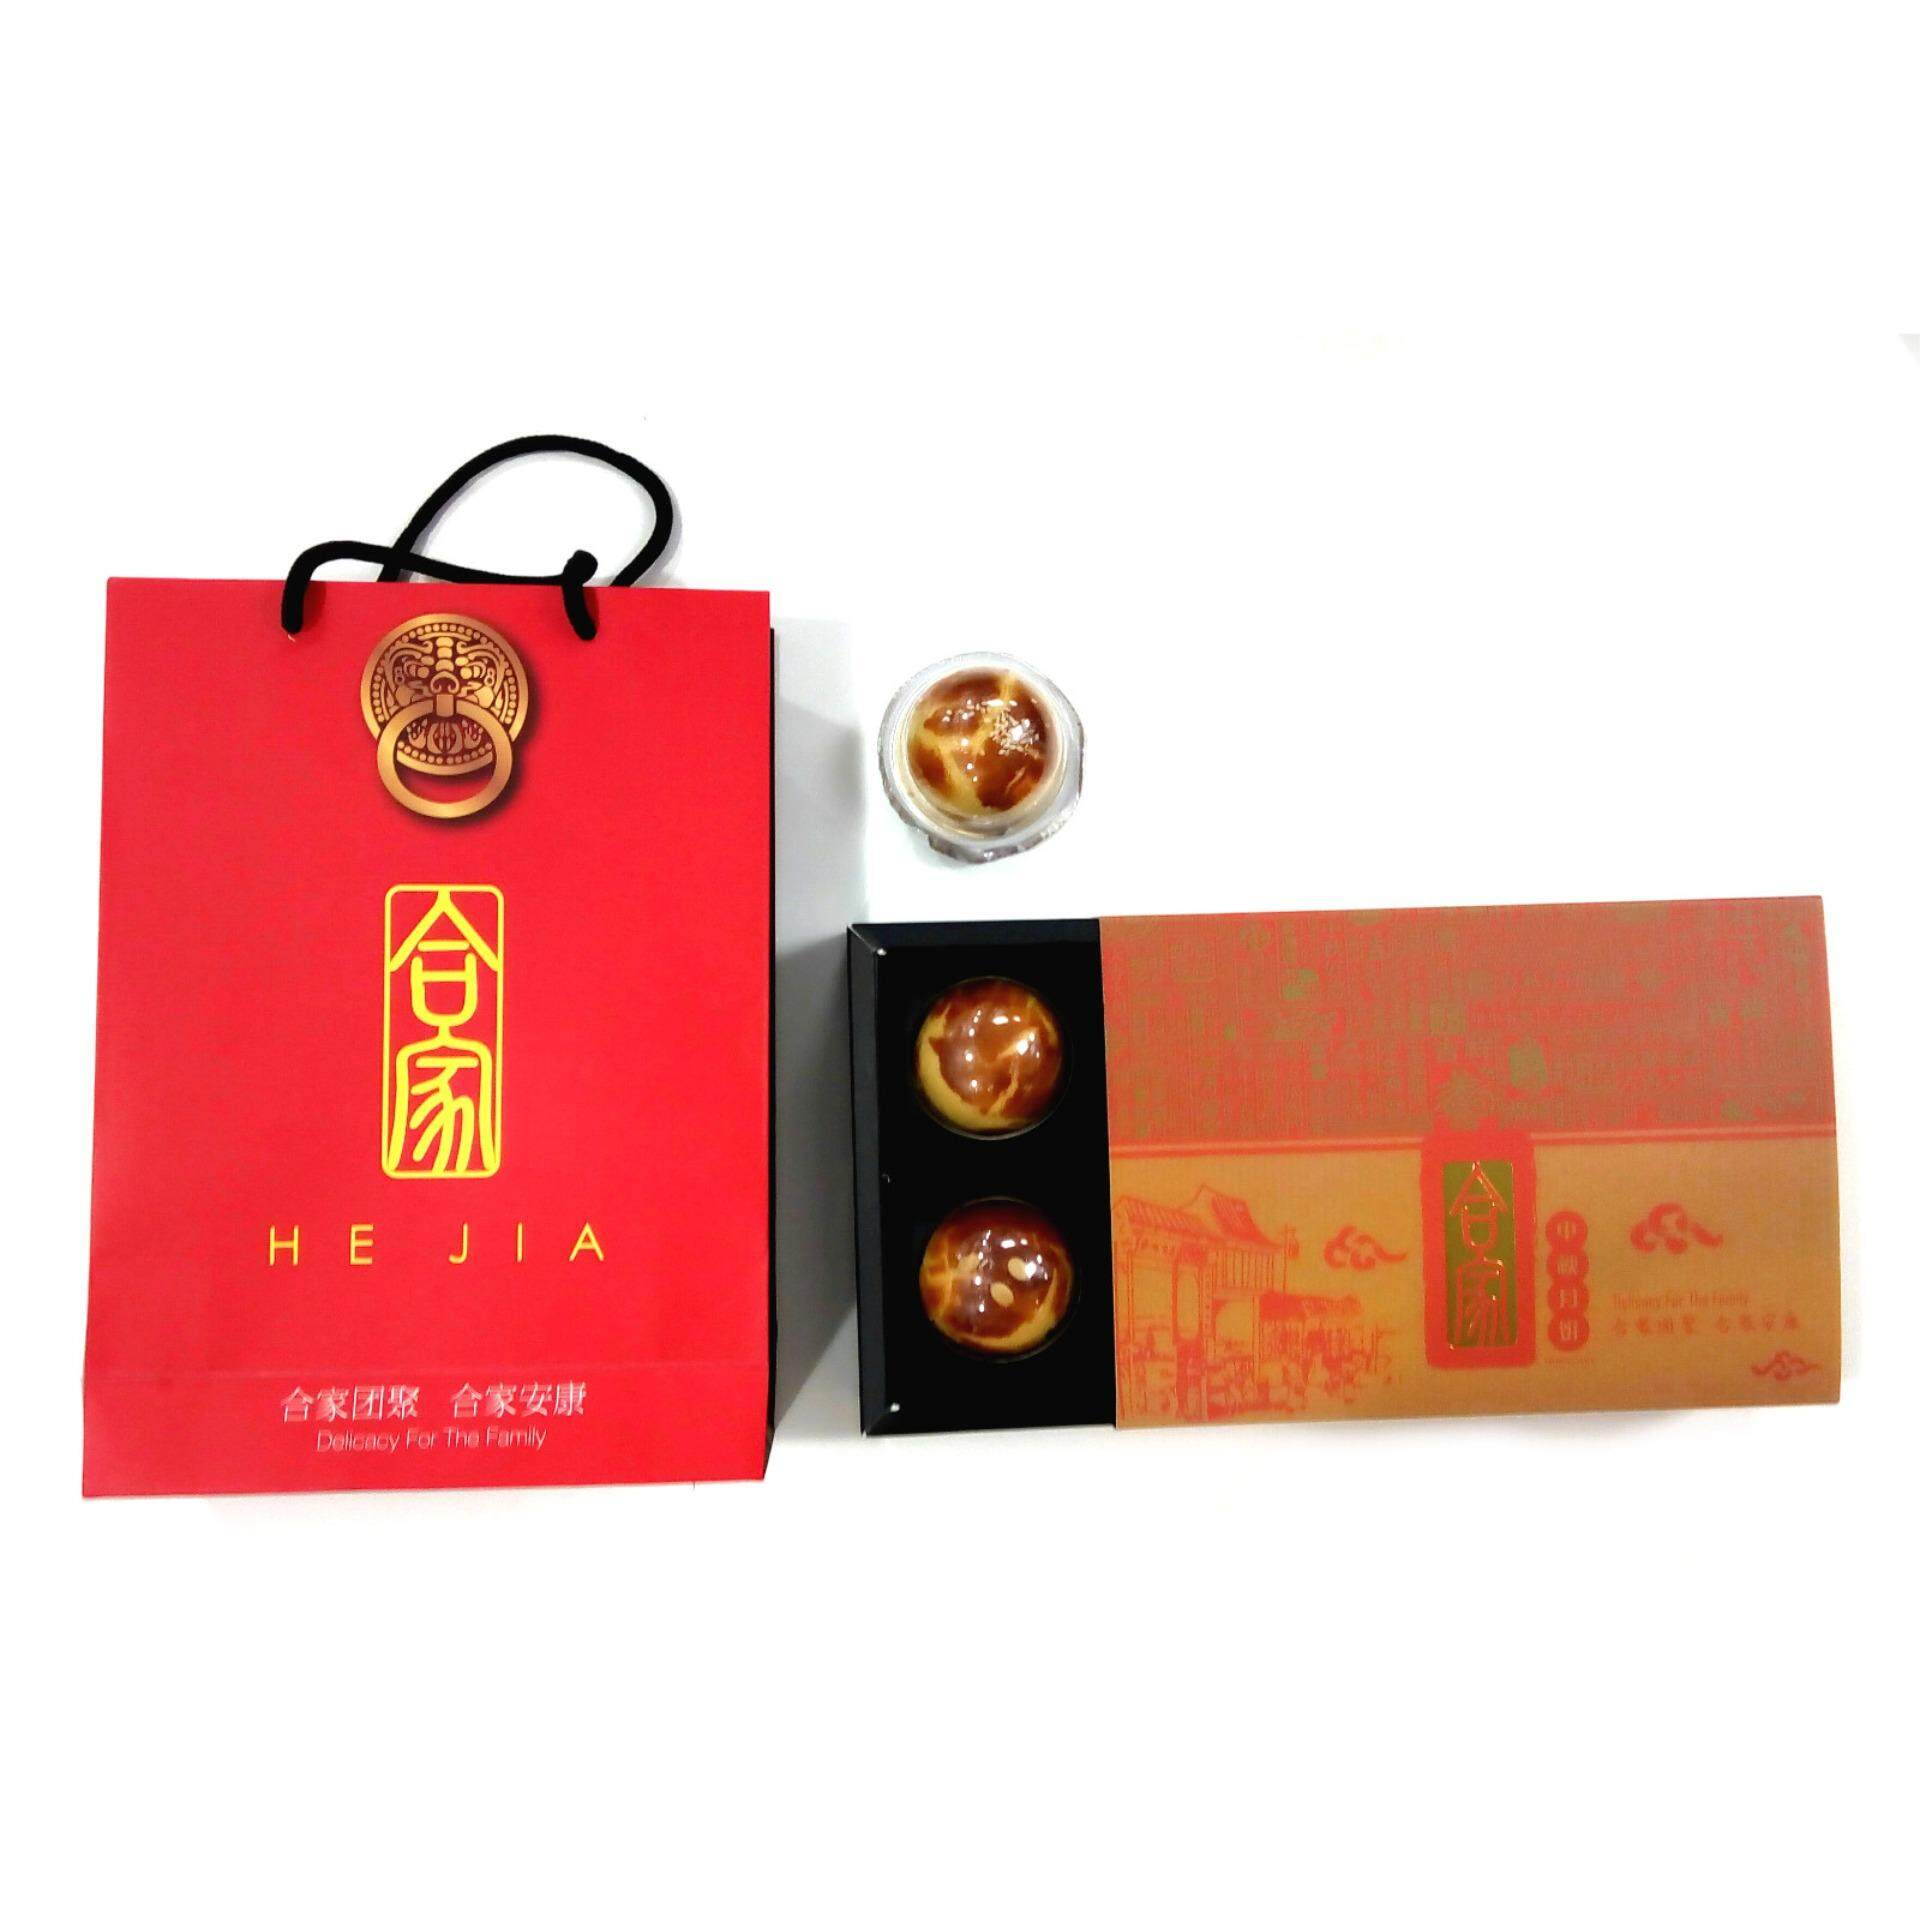 Hejia Shanghai Mooncake - Pandan Lotus Flavor (6 Pieces in a Box)    (6)